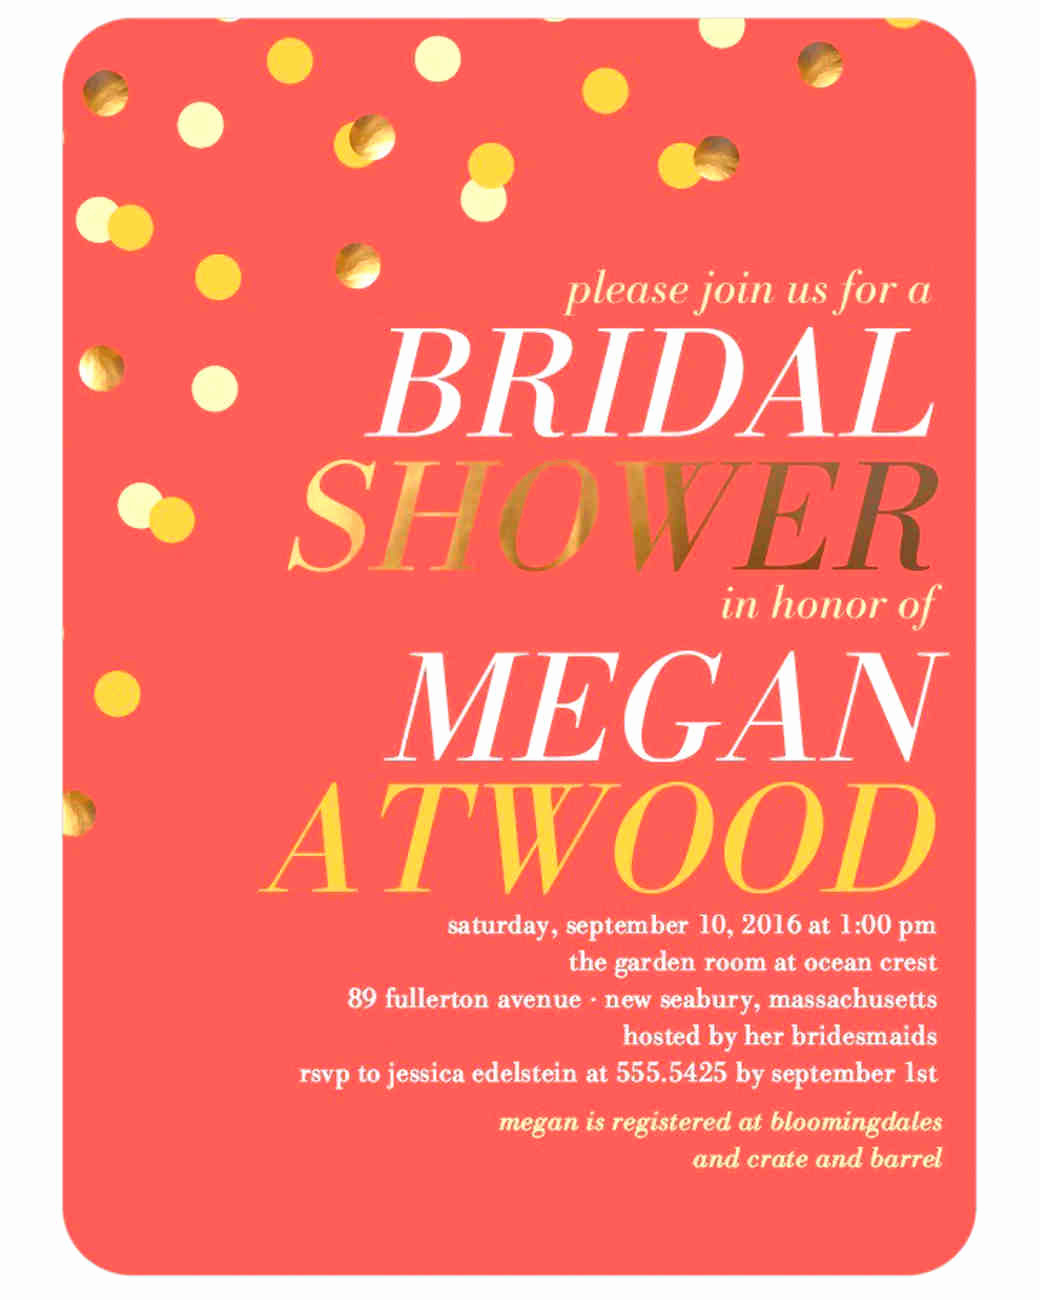 Last Minute Invitation Quotes Luxury How to Host A Last Minute Bridal Shower